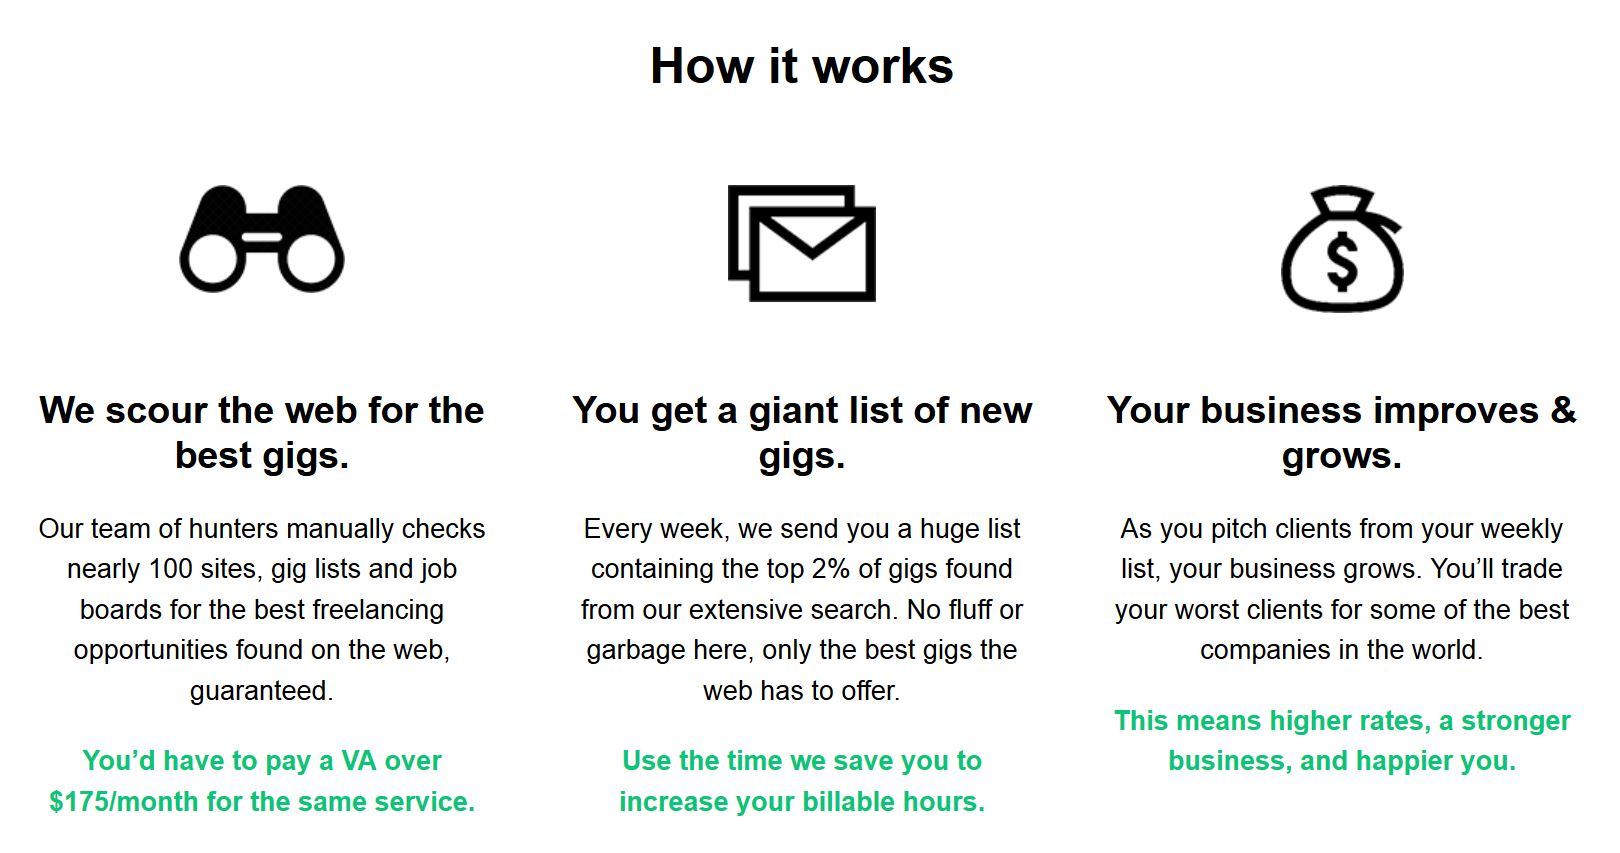 68 Freelance job sites to help you find work and quit your